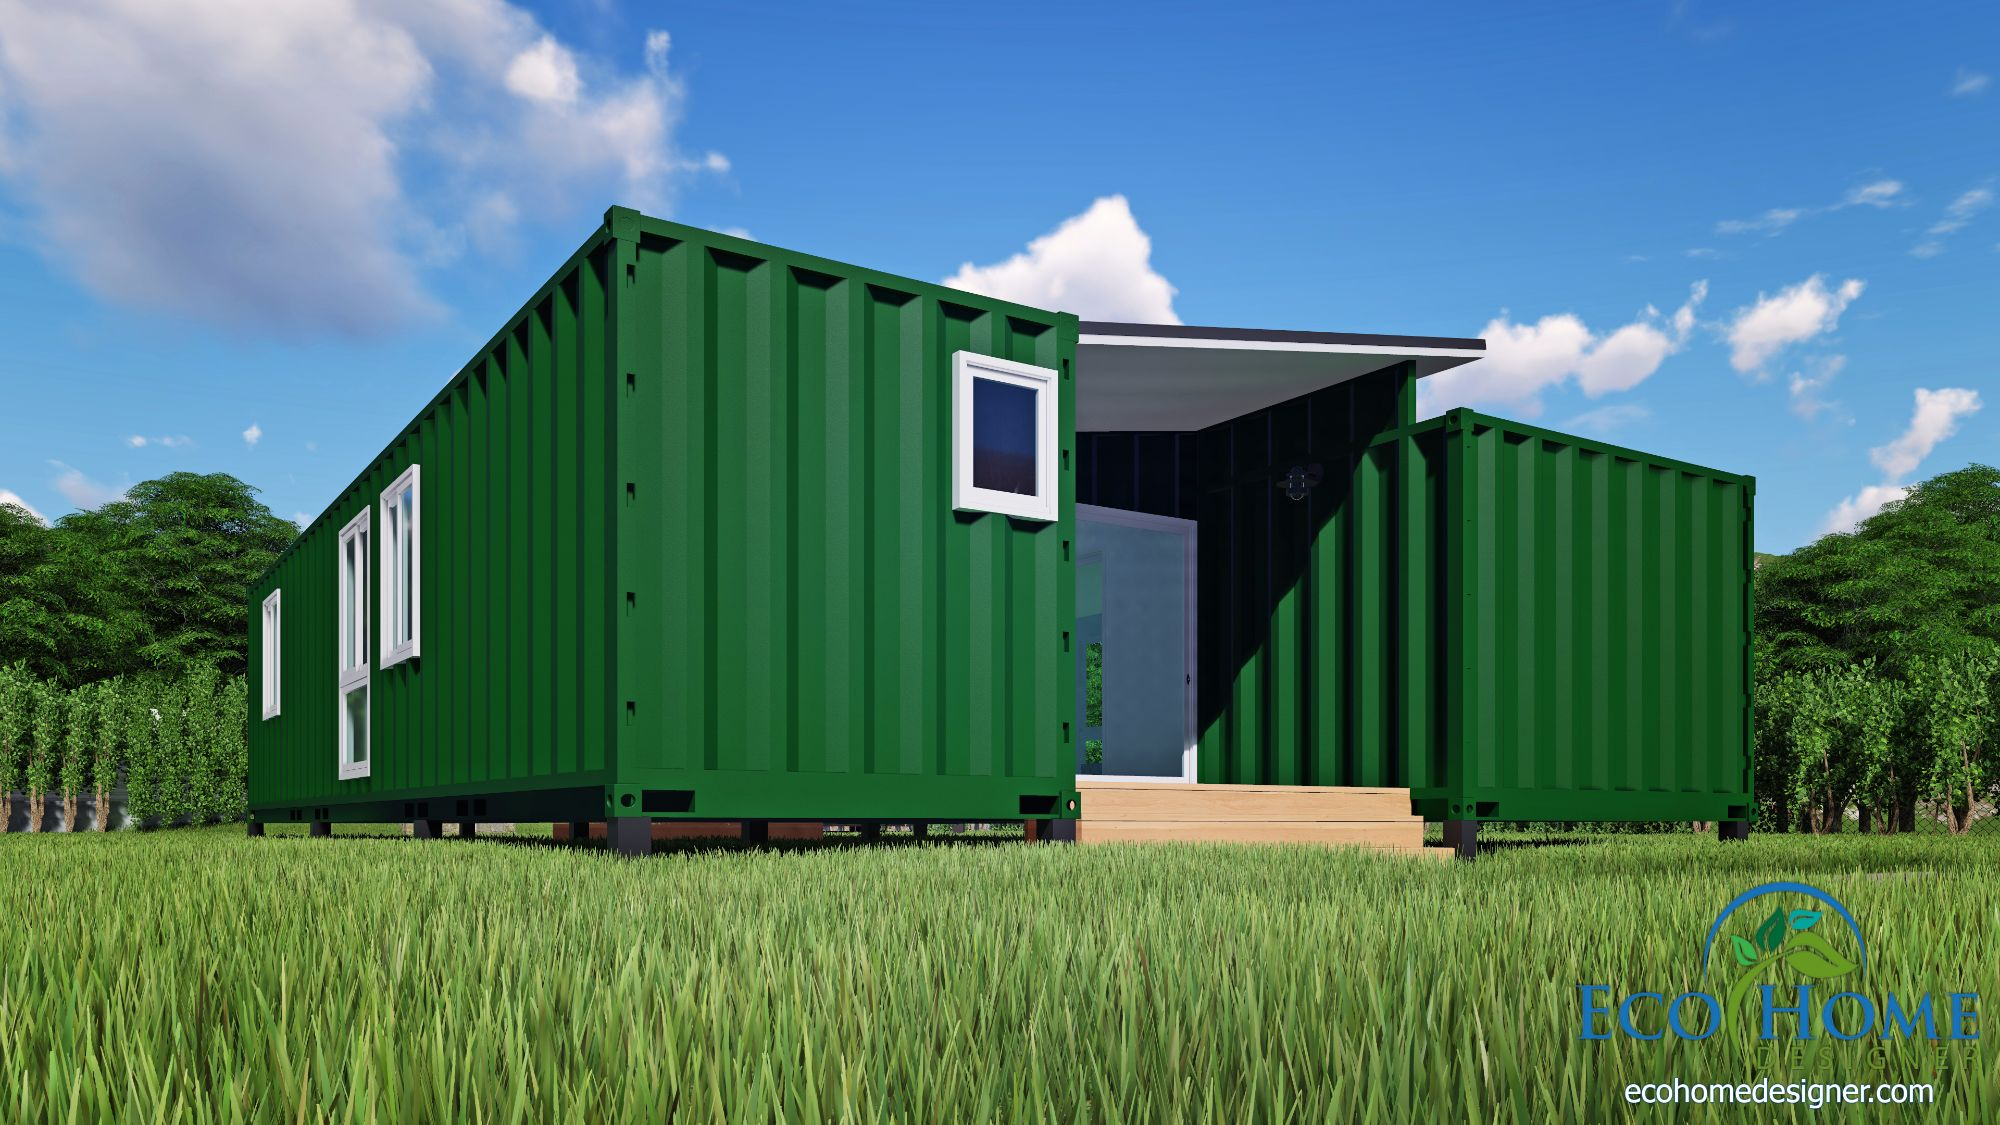 Sch15 2 x 40ft container home plan with breezeway eco home designer - Ft container home ...